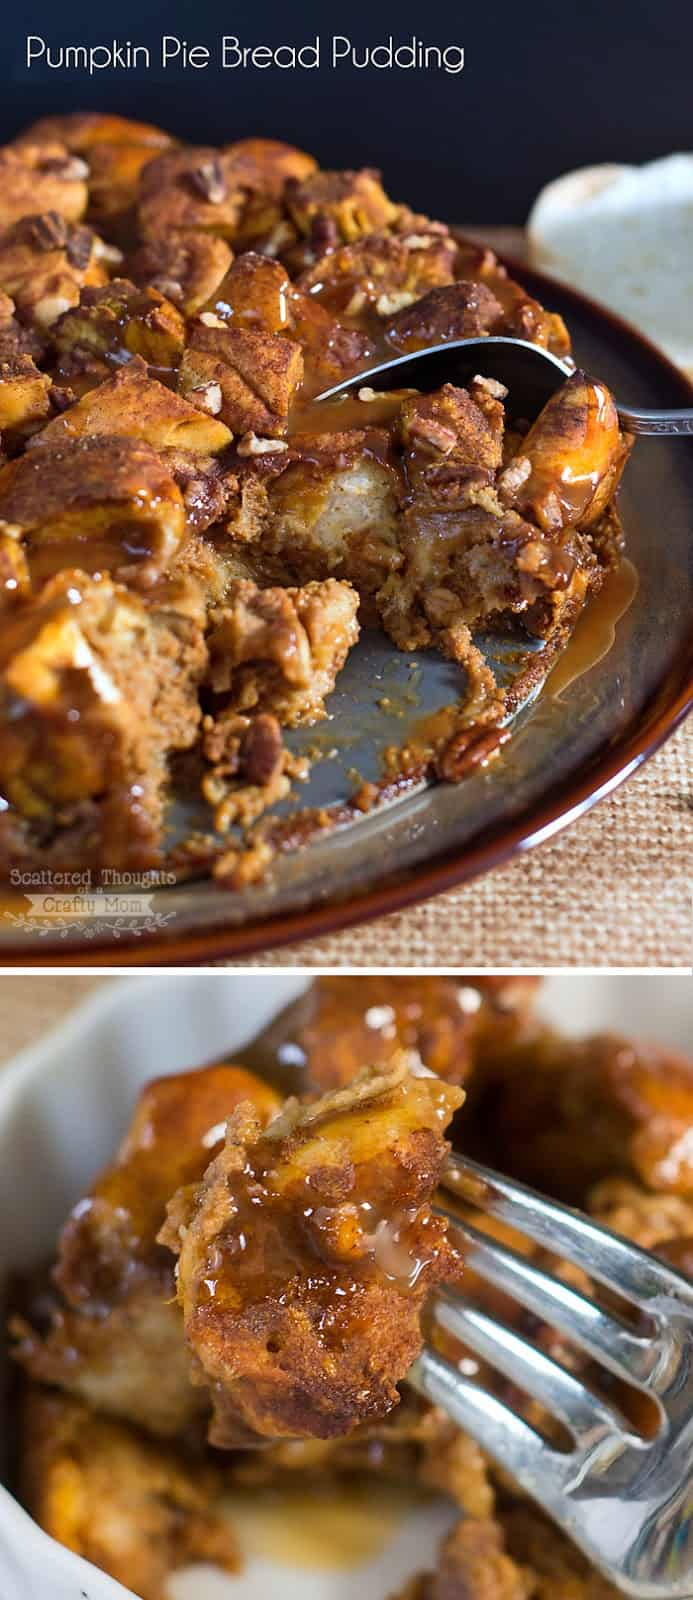 Decadent Pumpkin Pie Bread Pudding w/ Caramel Sauce recipe. It is sure to be a new family fall favorite!